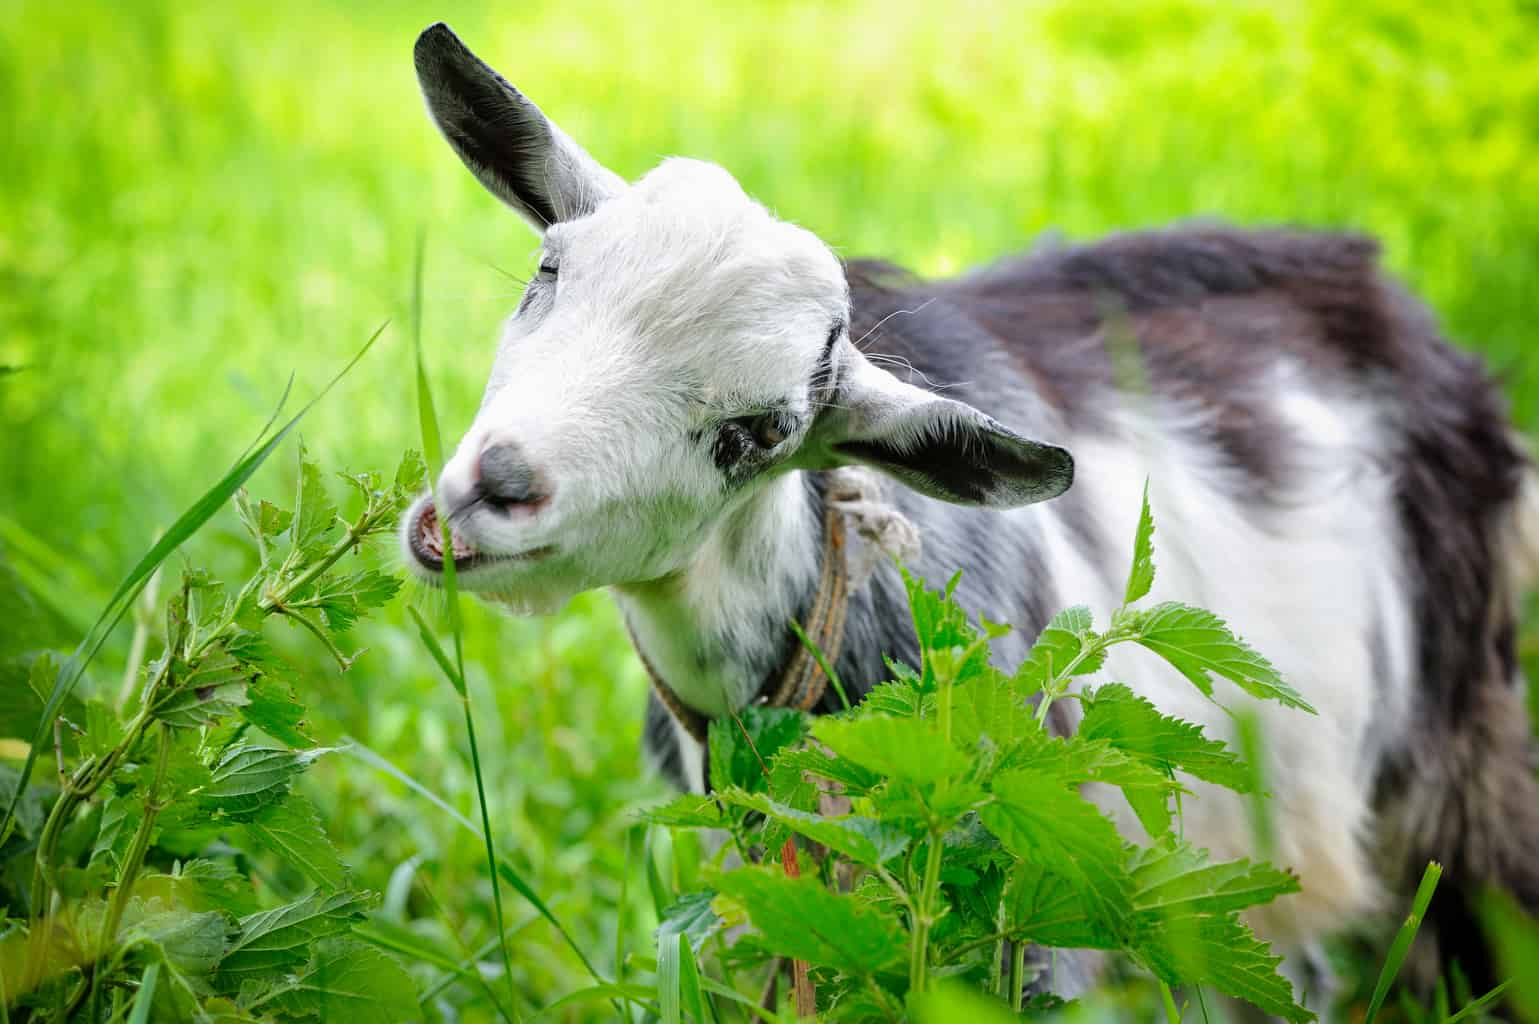 What do goats eat? Goat love eating grass and forage in a pasture